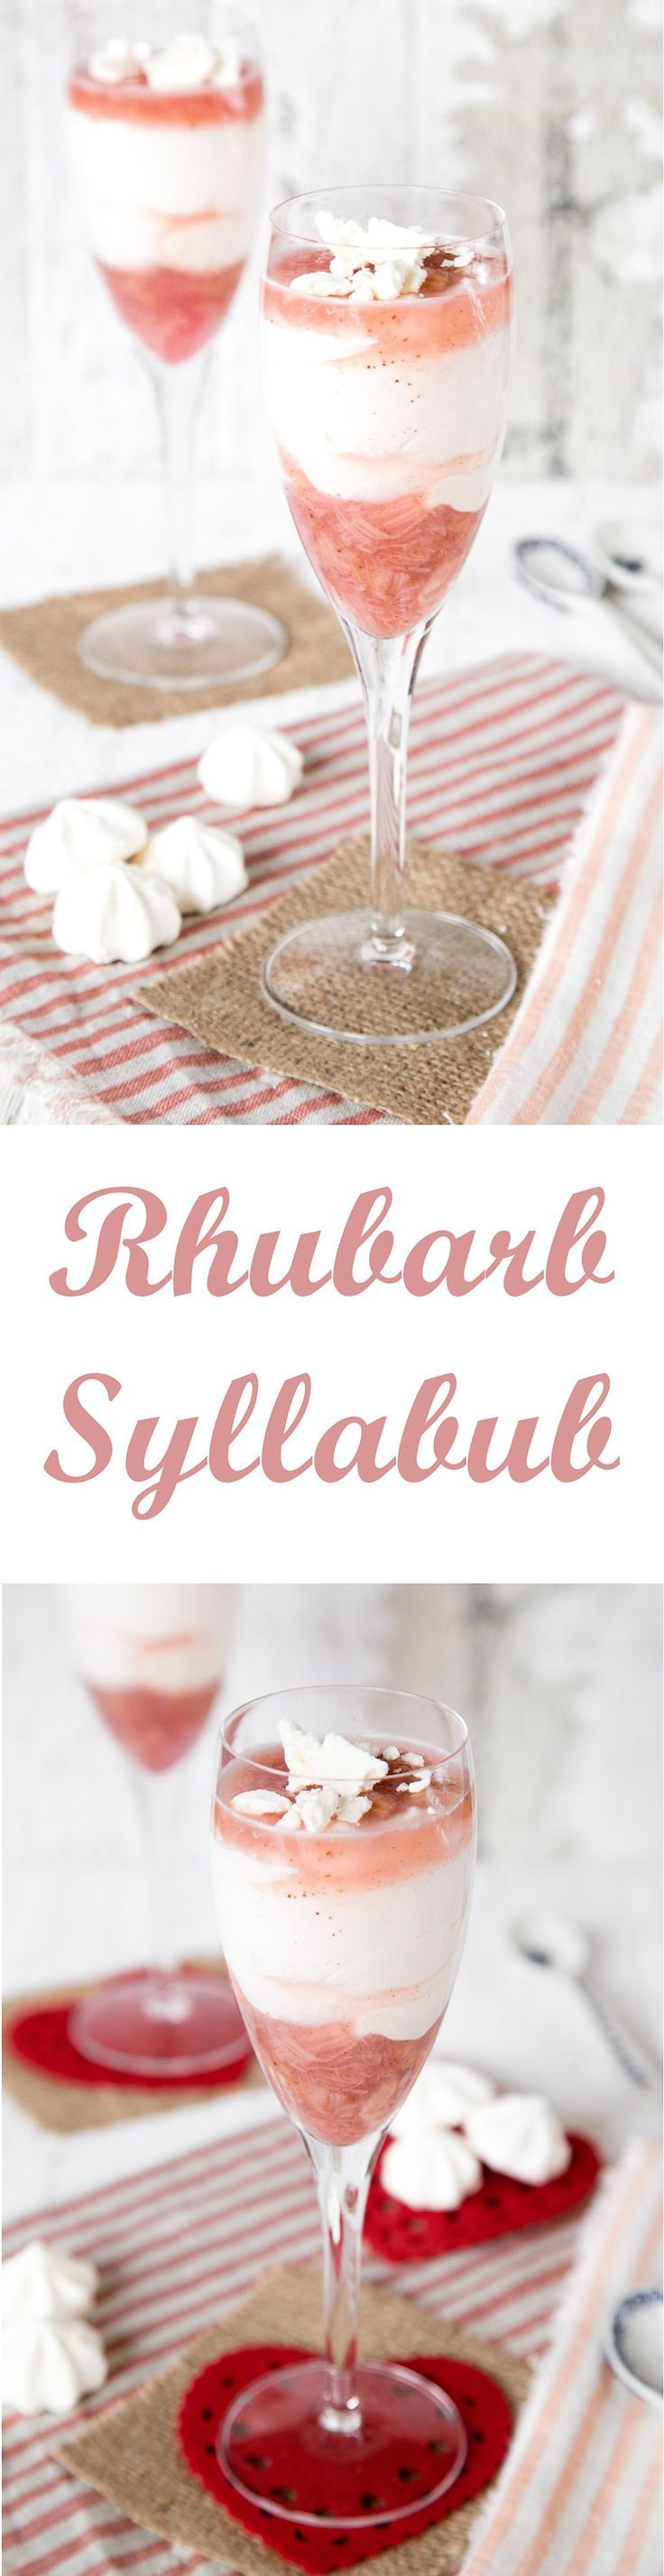 Vanilla and rhubarb syllabub is about the easiest pudding you can make, serve in a wine glass for stunning effect.